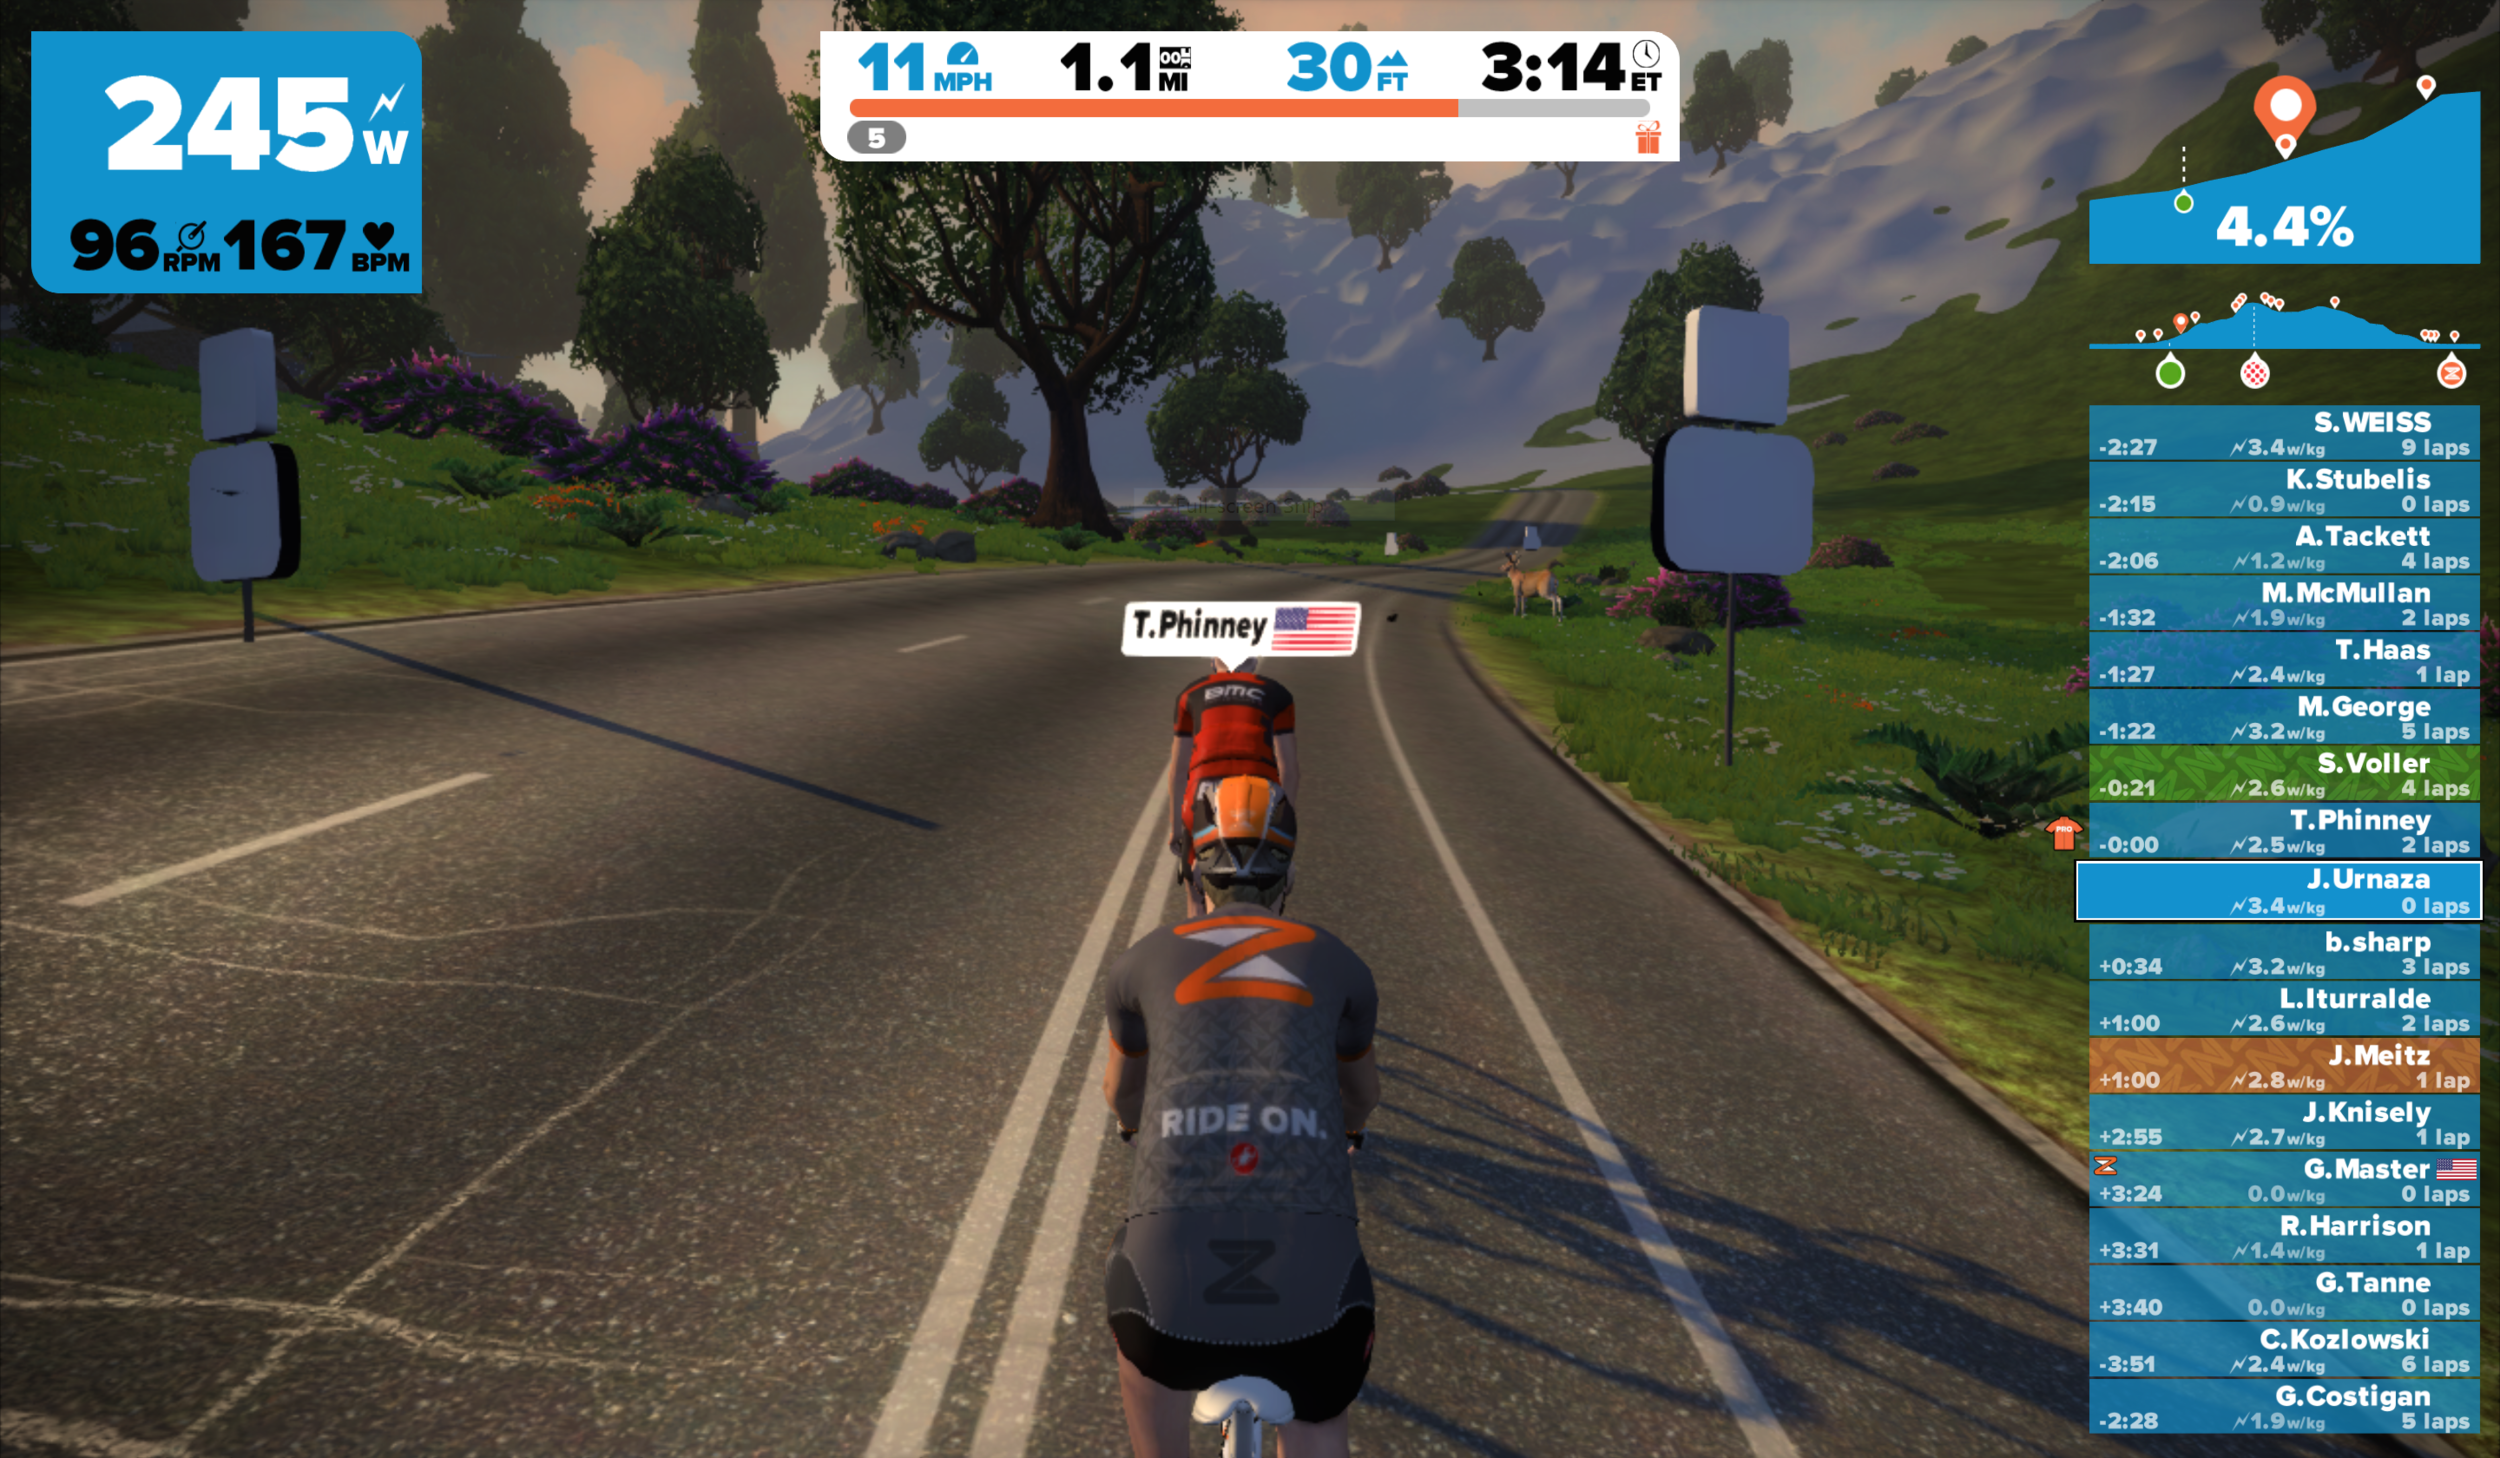 Holding Taylor Phinney's wheel up Col d'Zwift @GoZwift